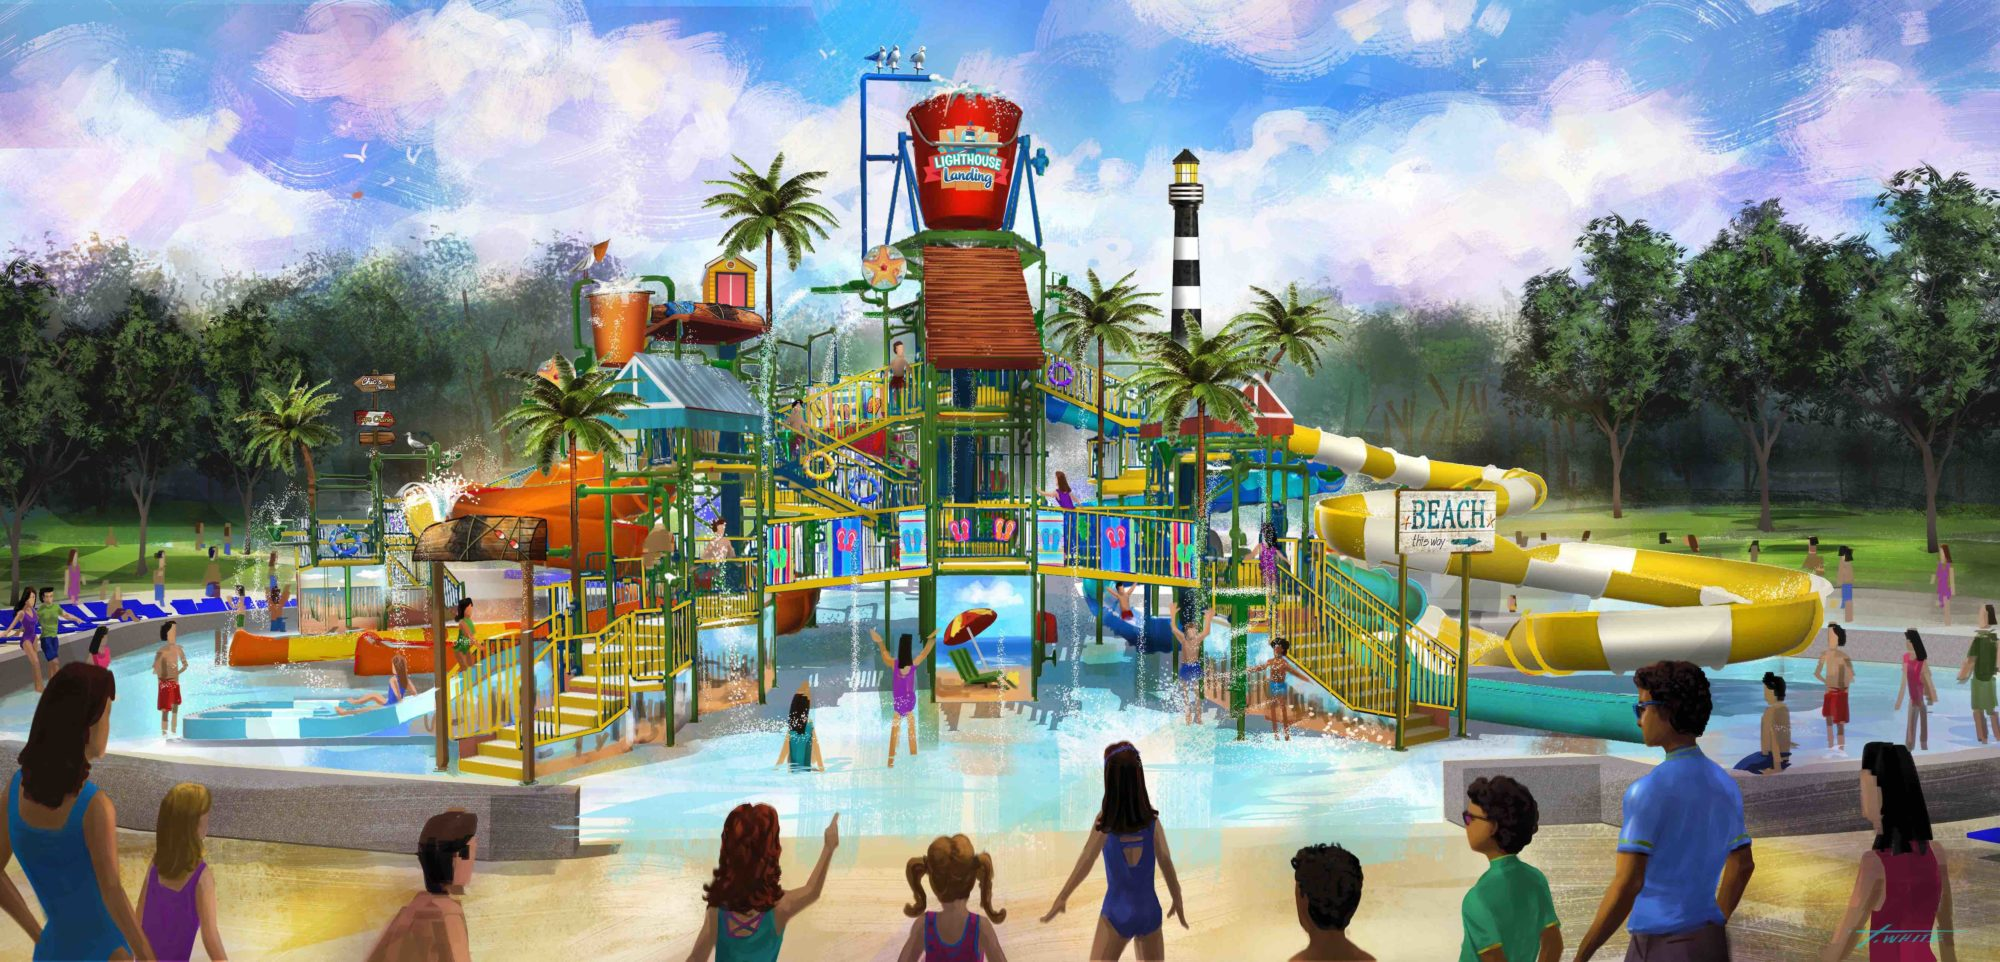 Kings Dominion Water Park To Make Big Splash In 2020 Park World Online Theme Park Amusement Park And Attractions Industry News